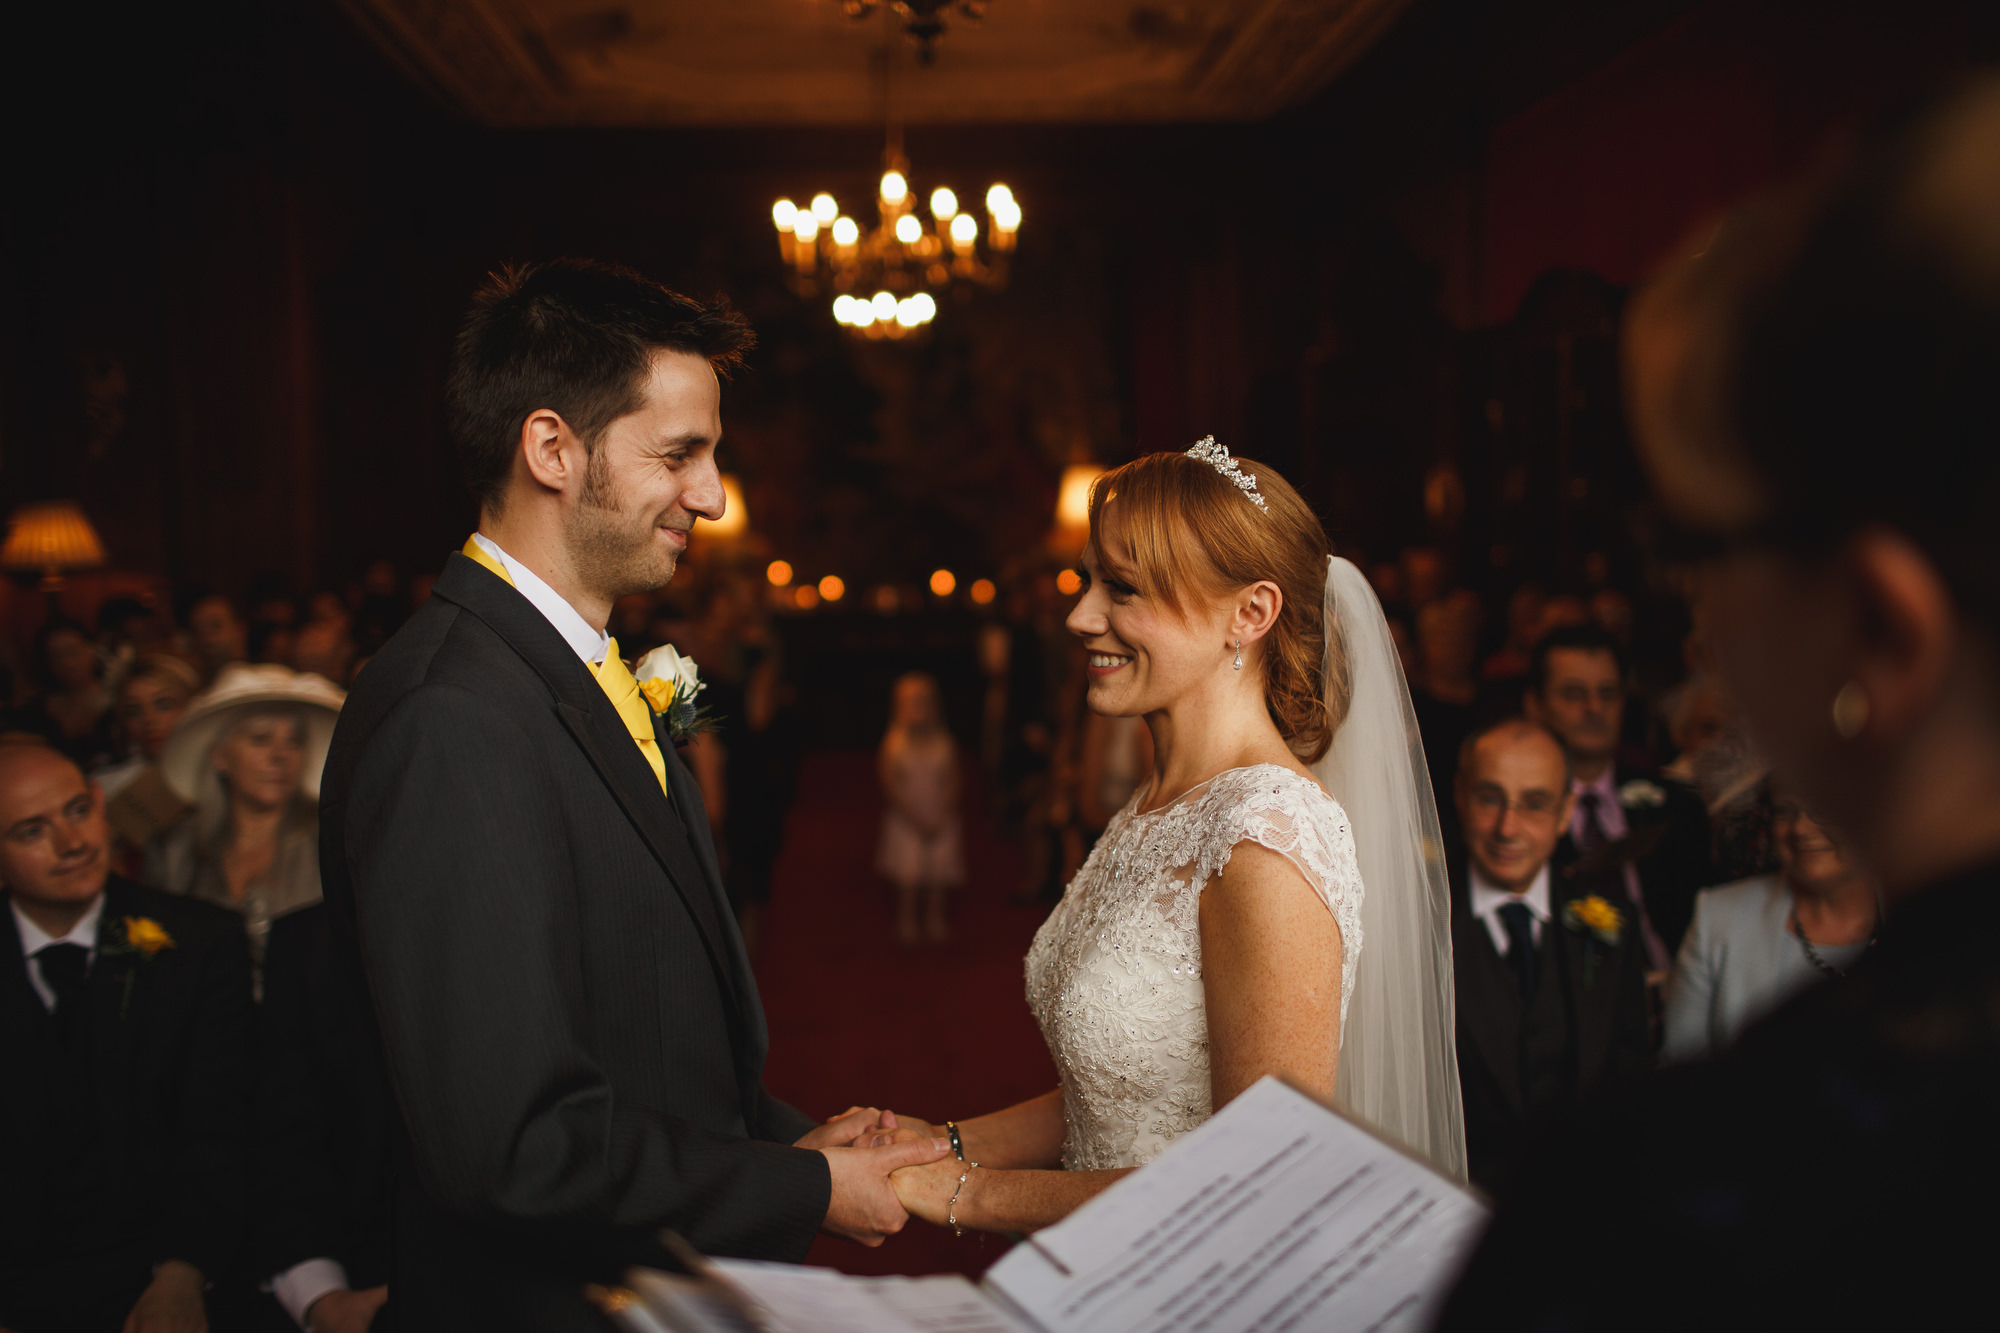 thornton-manor-wedding-photography-sarah-rich-21